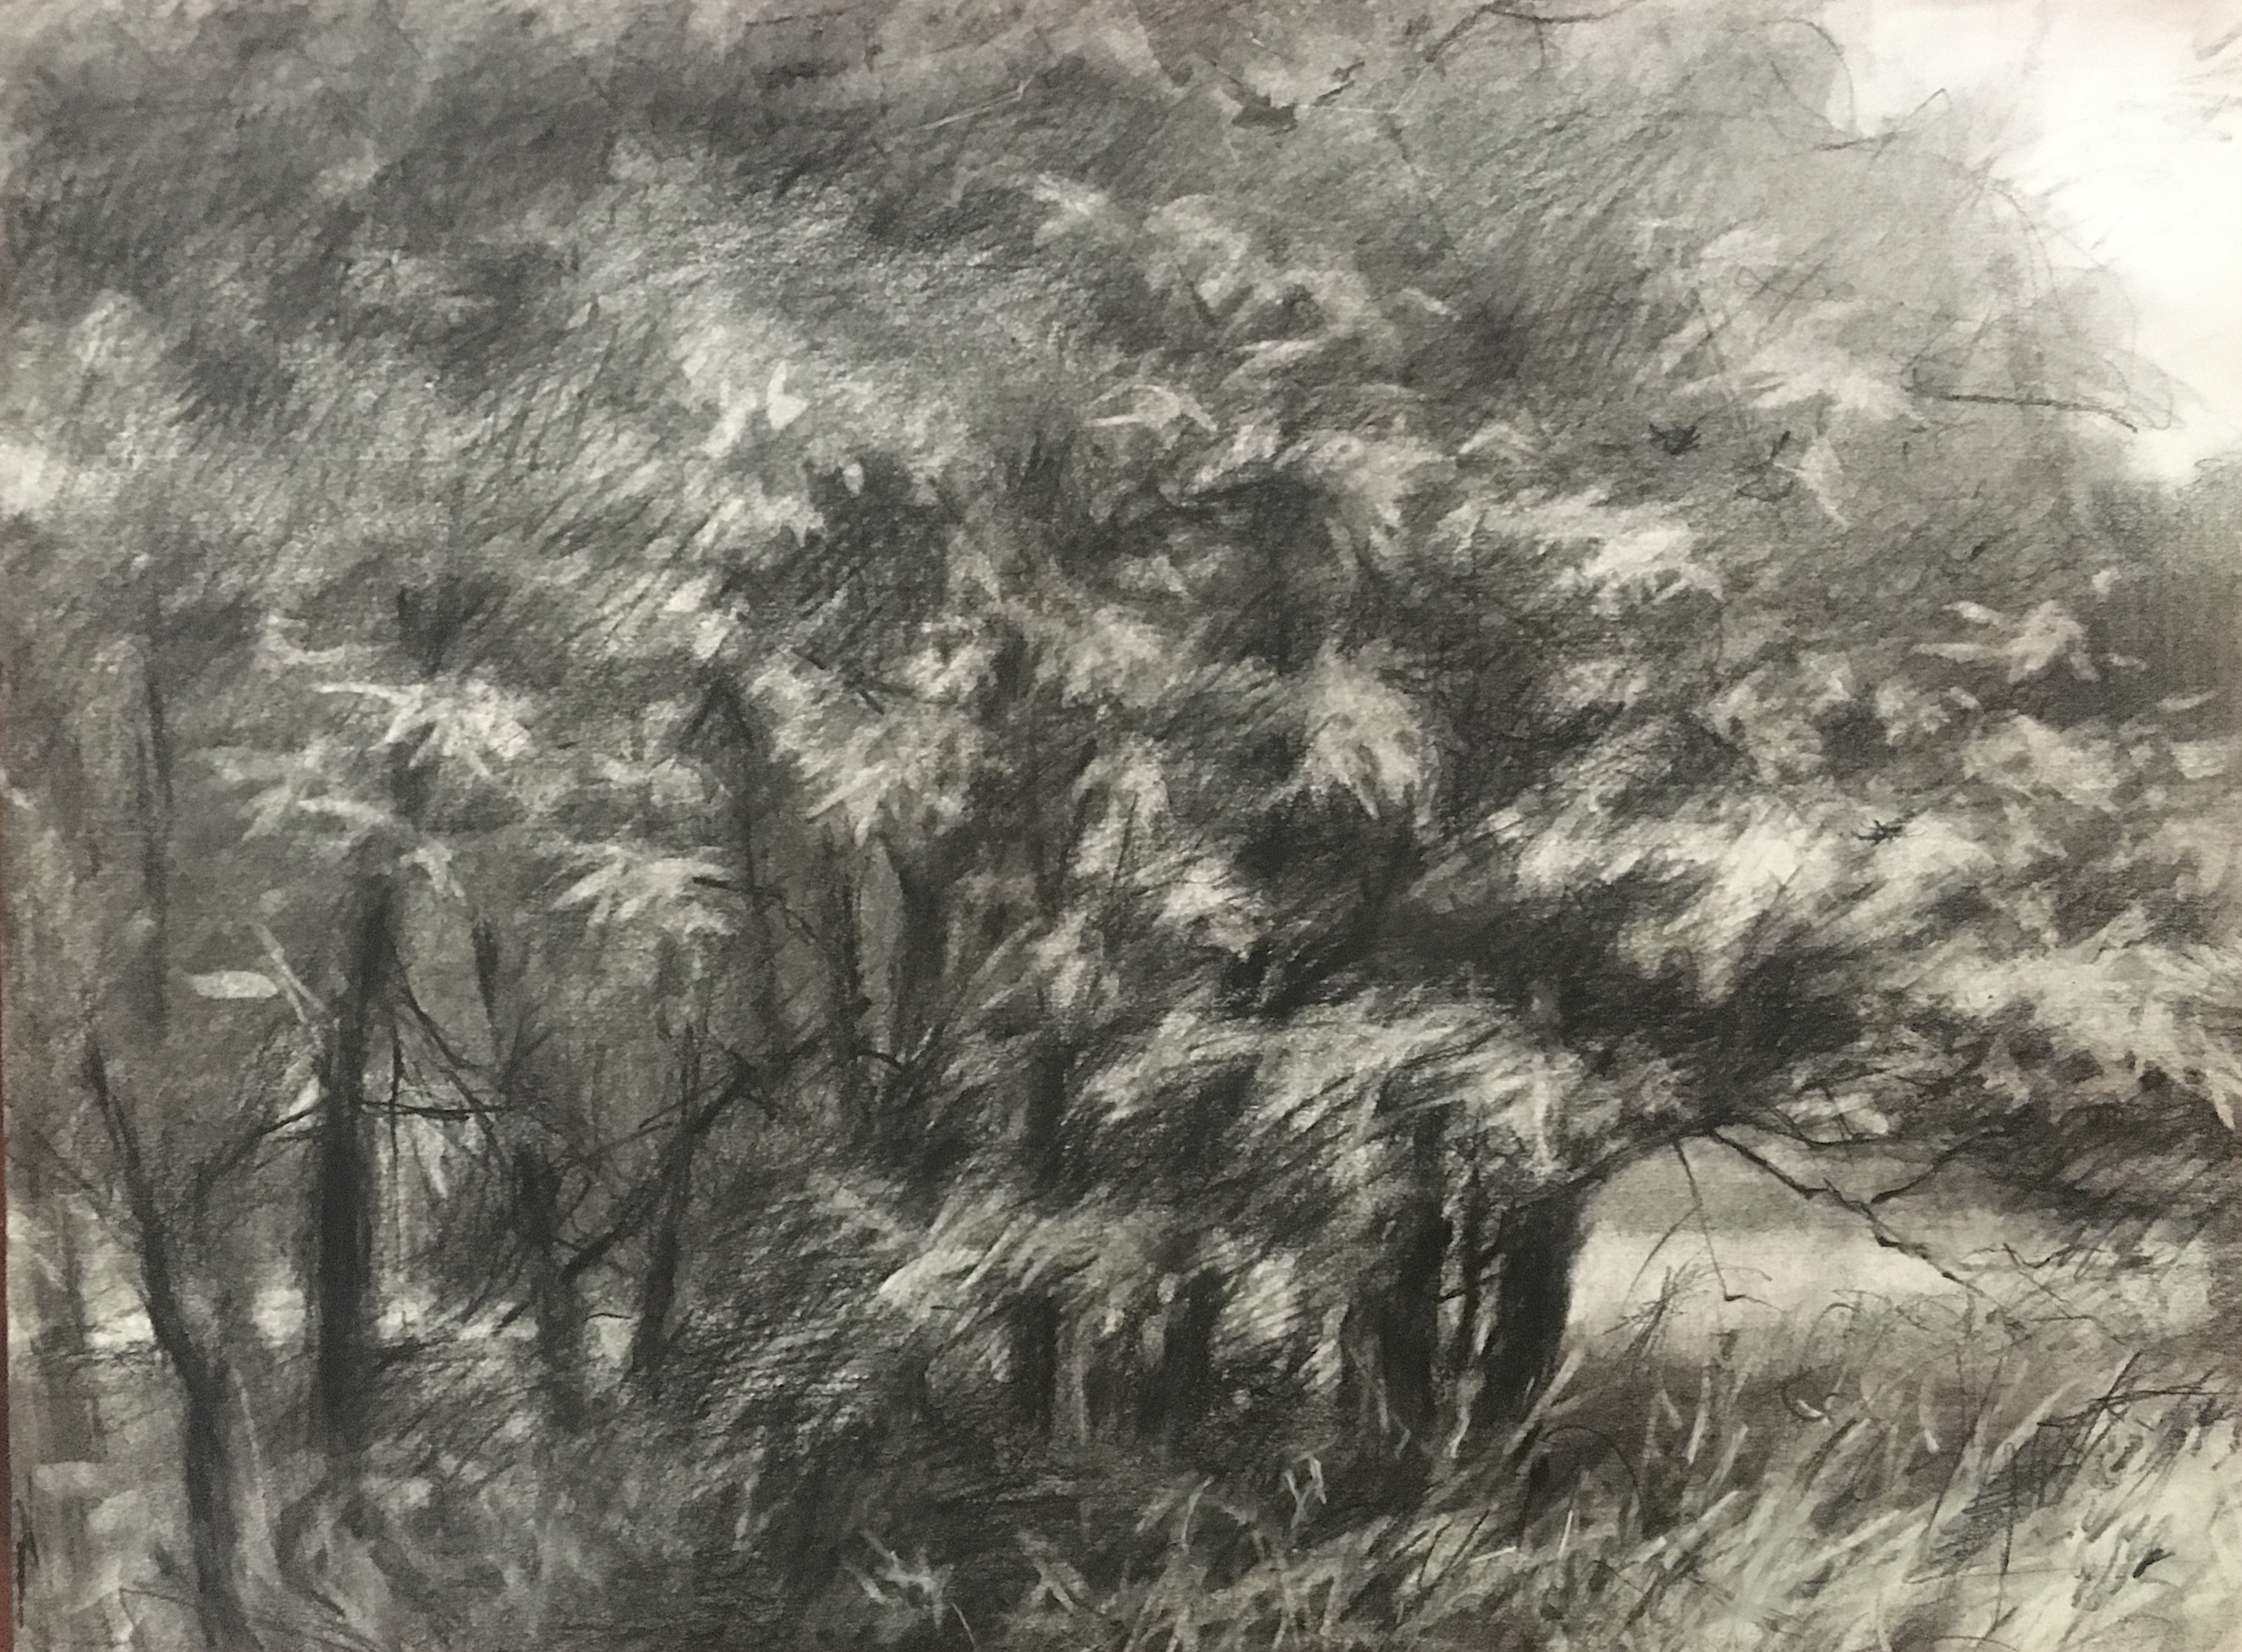 Morning View 4 • Vine charcoal & charcoal pencil on paper • 13.5 x 18""